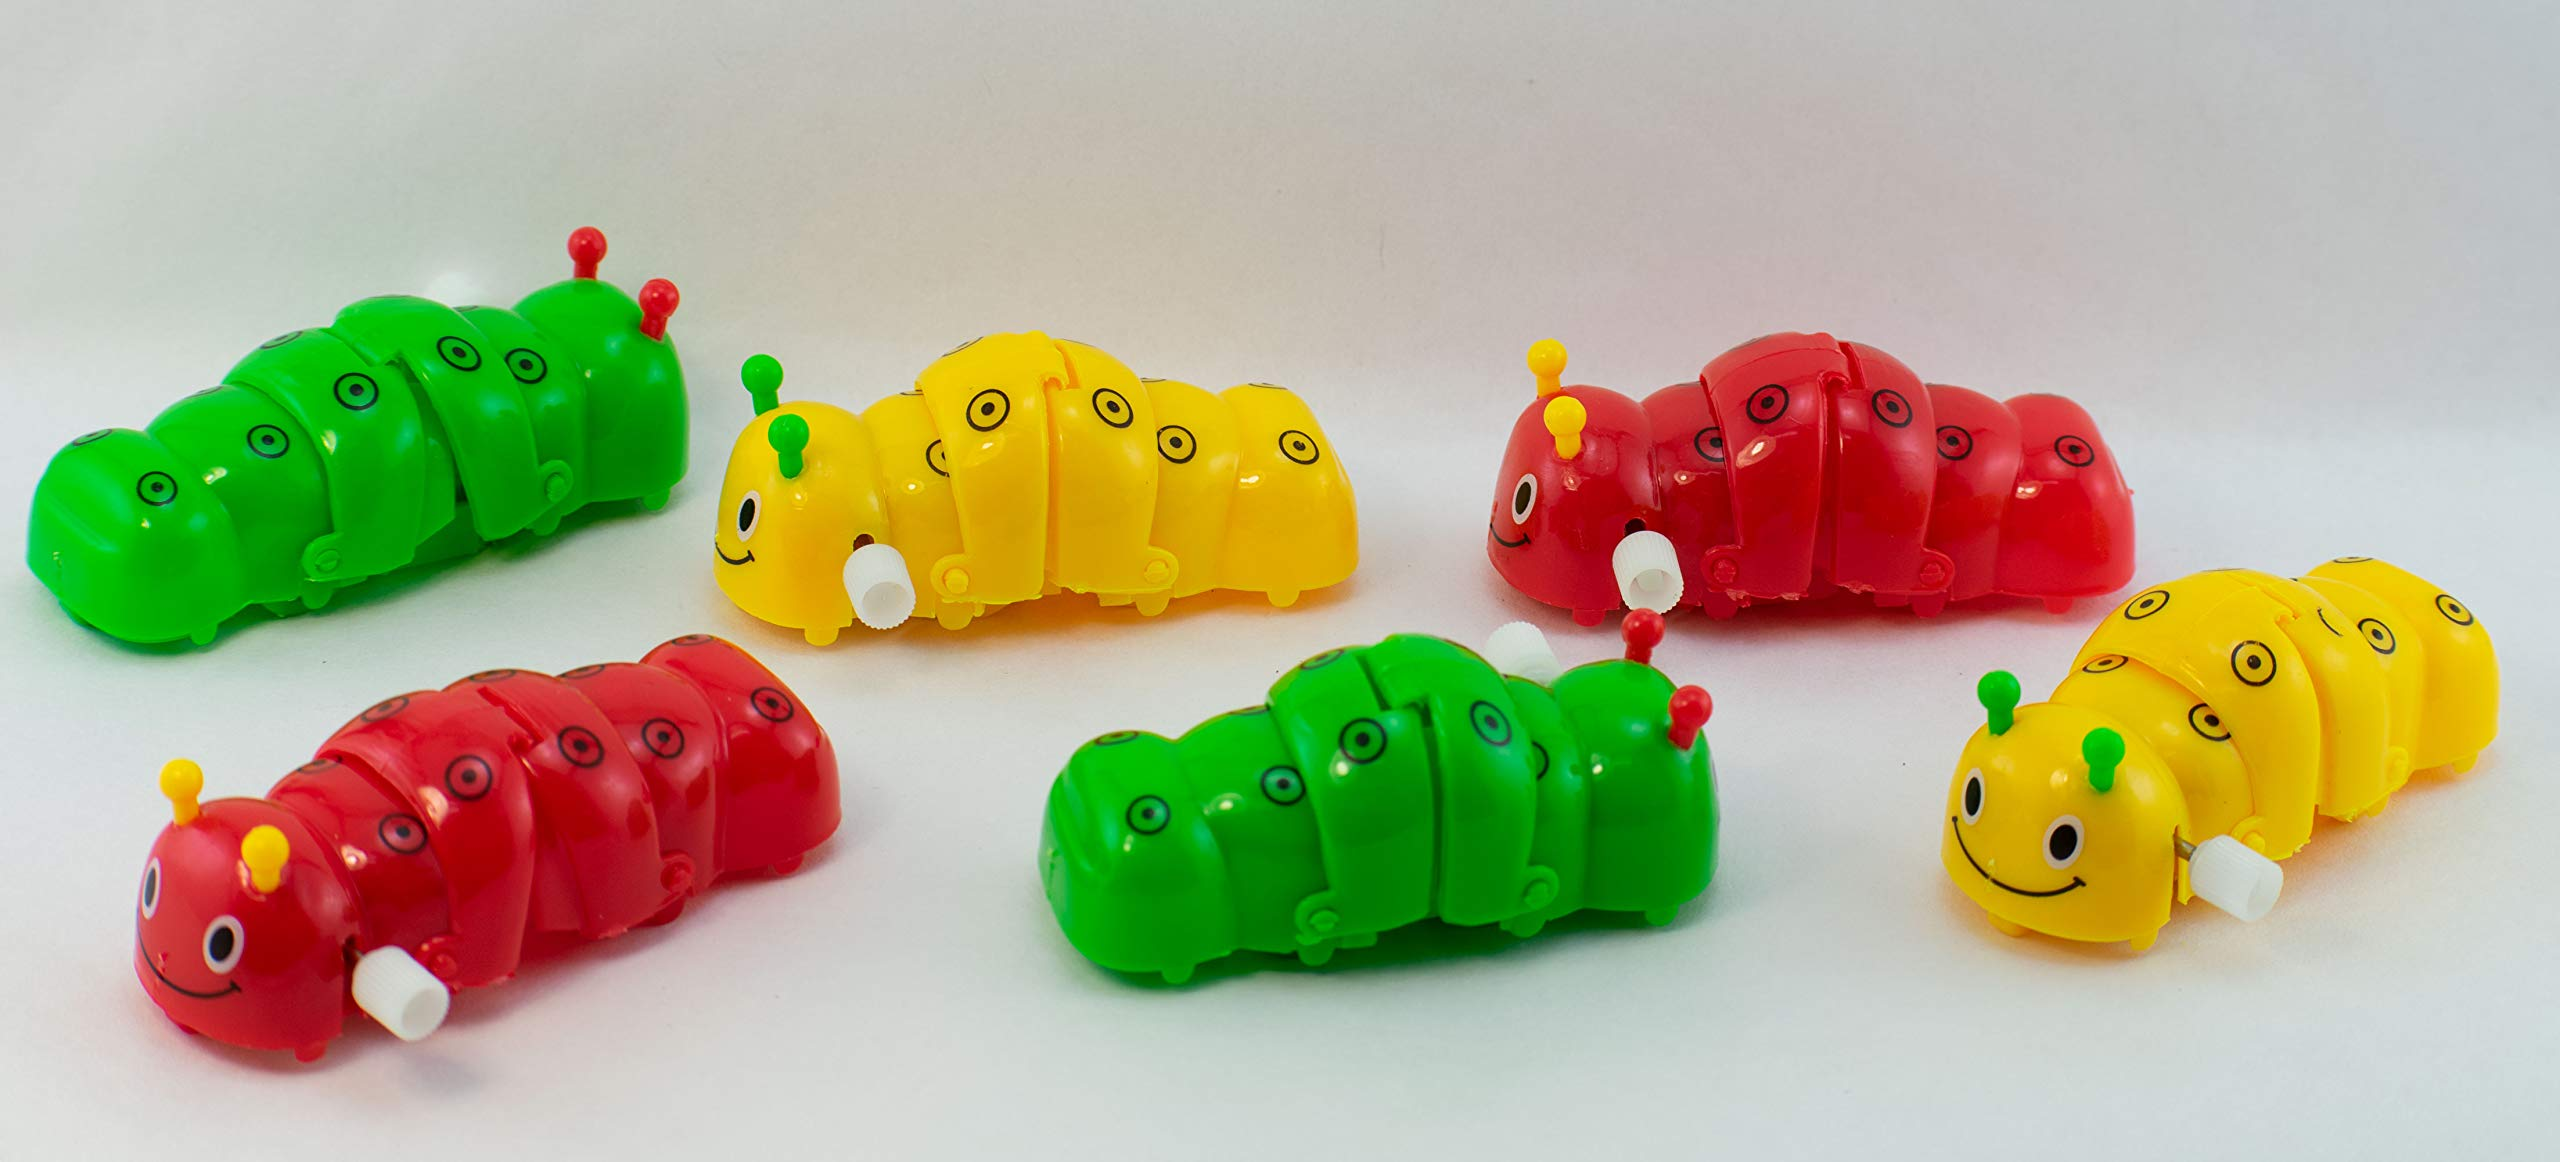 Giggle Time Wind-Up Caterpillar Assortment - (24) Pieces - Assorted Bright Colors - for Kids, Boys and Girls, Party Favors, Pinata Stuffers, Children's Gift Bags, Carnival Prizes by Giggle Time